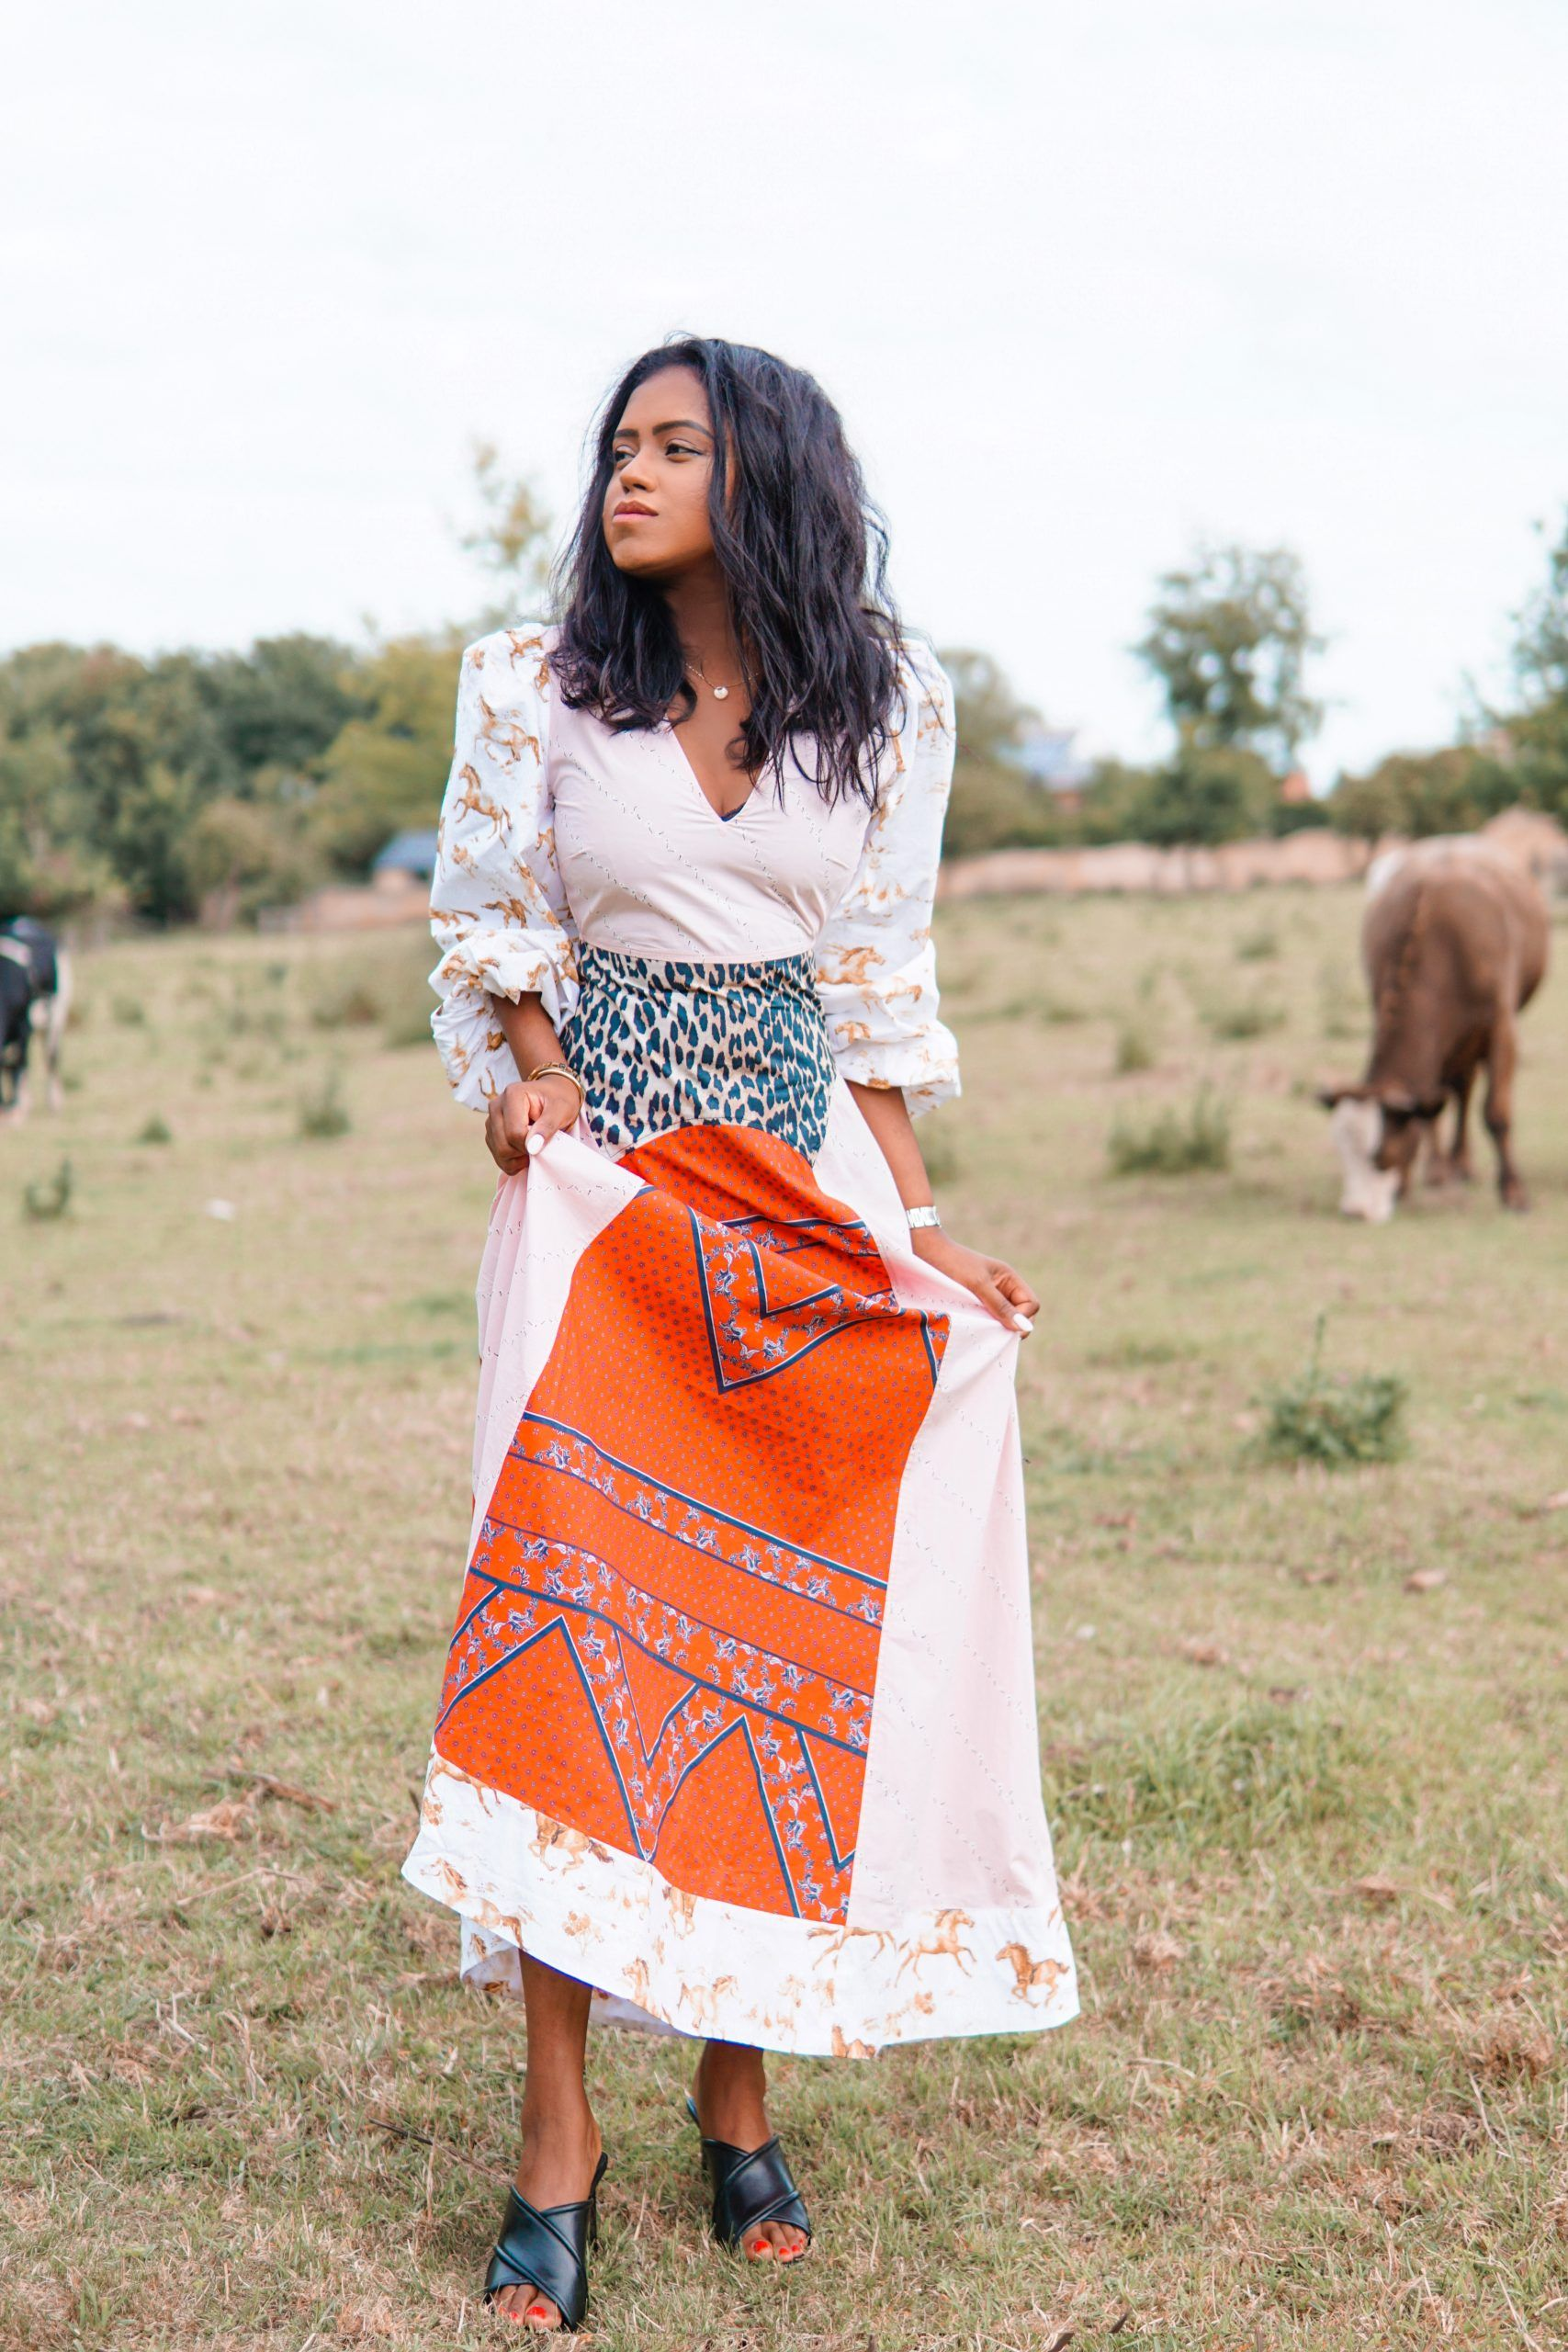 Sachini standing in the fields wearing a red and white Ganni dress